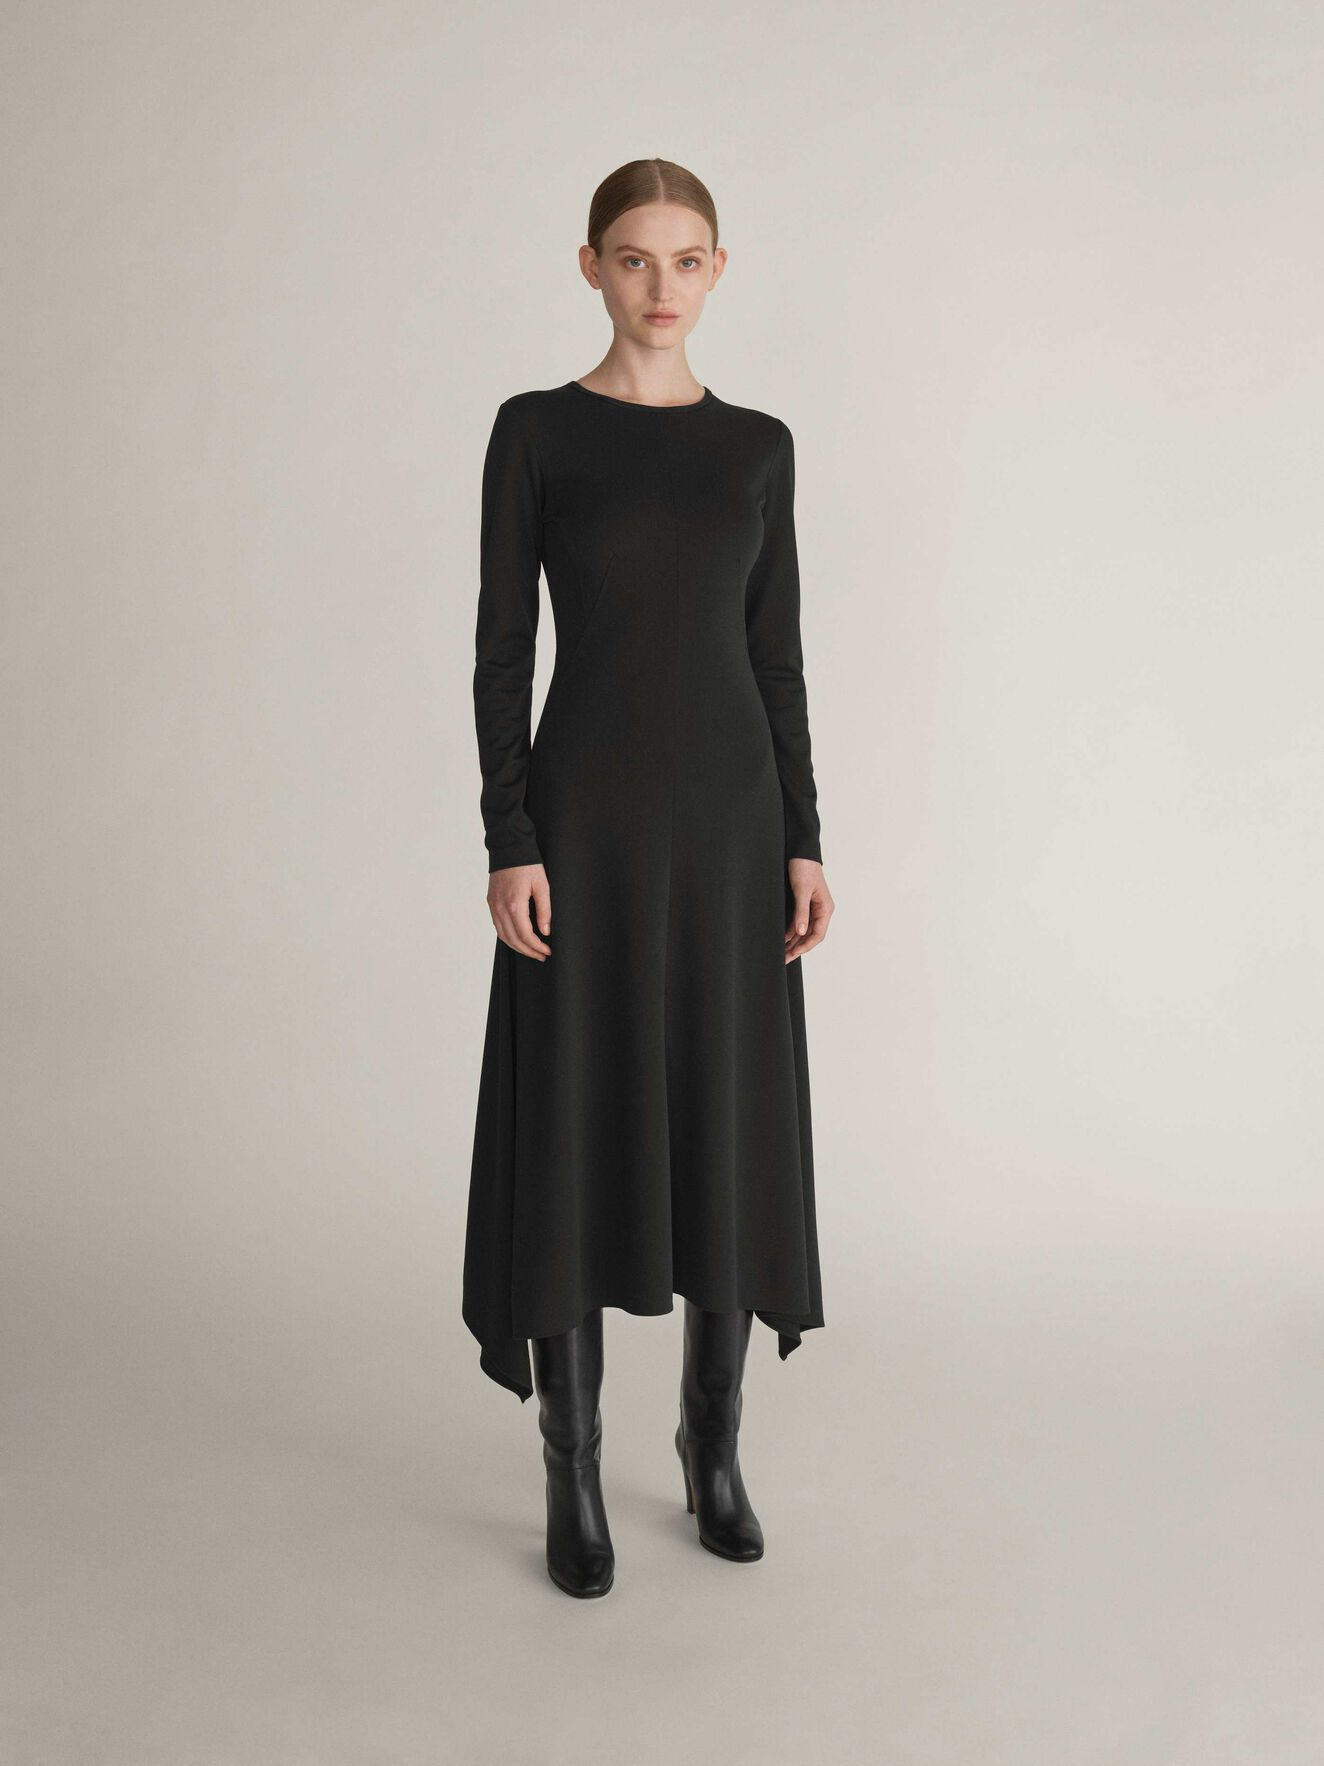 Pennylane Dress in Midnight Black from Tiger of Sweden